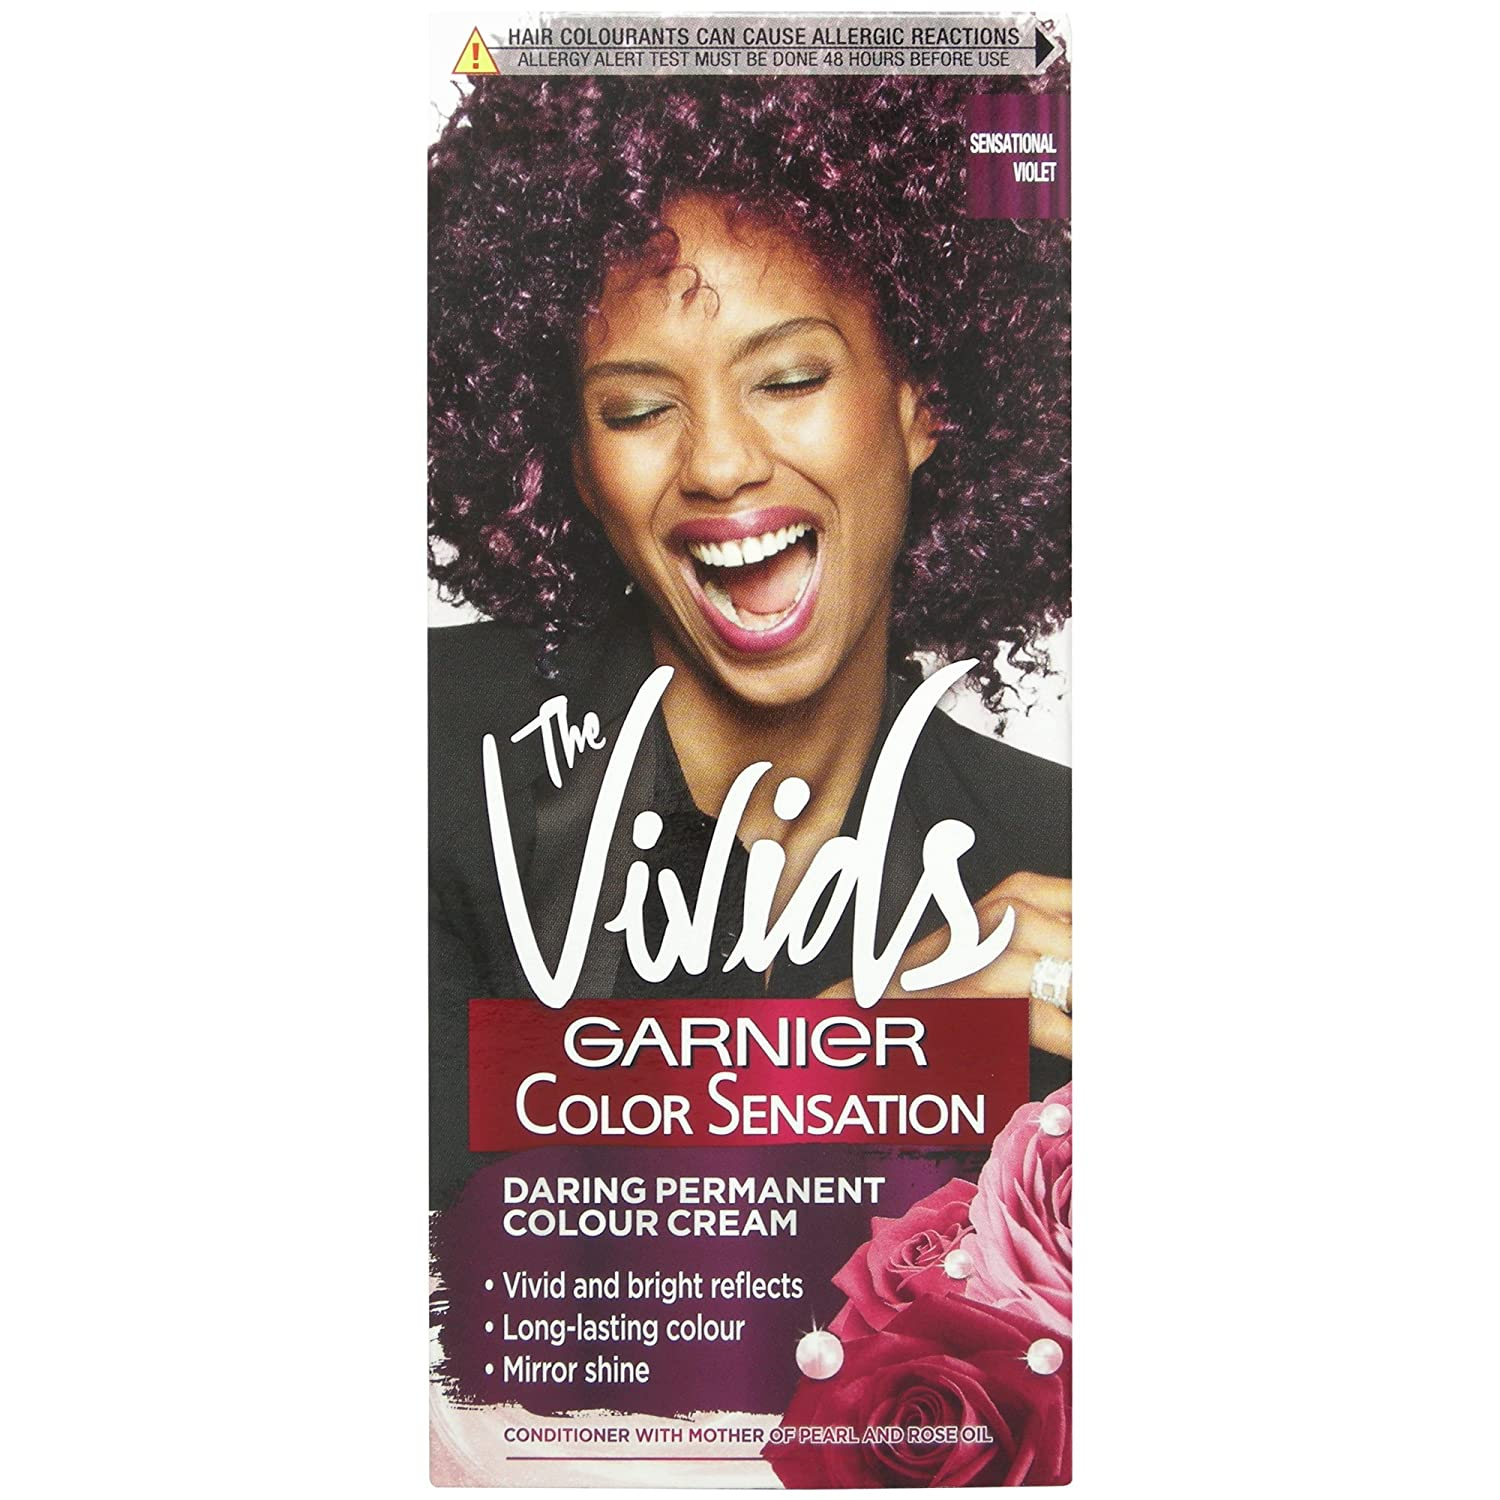 Color Sensation Vivids S9 Silver Diamond Blonde Permanent Hair Dye L'Oreal 3600542135689